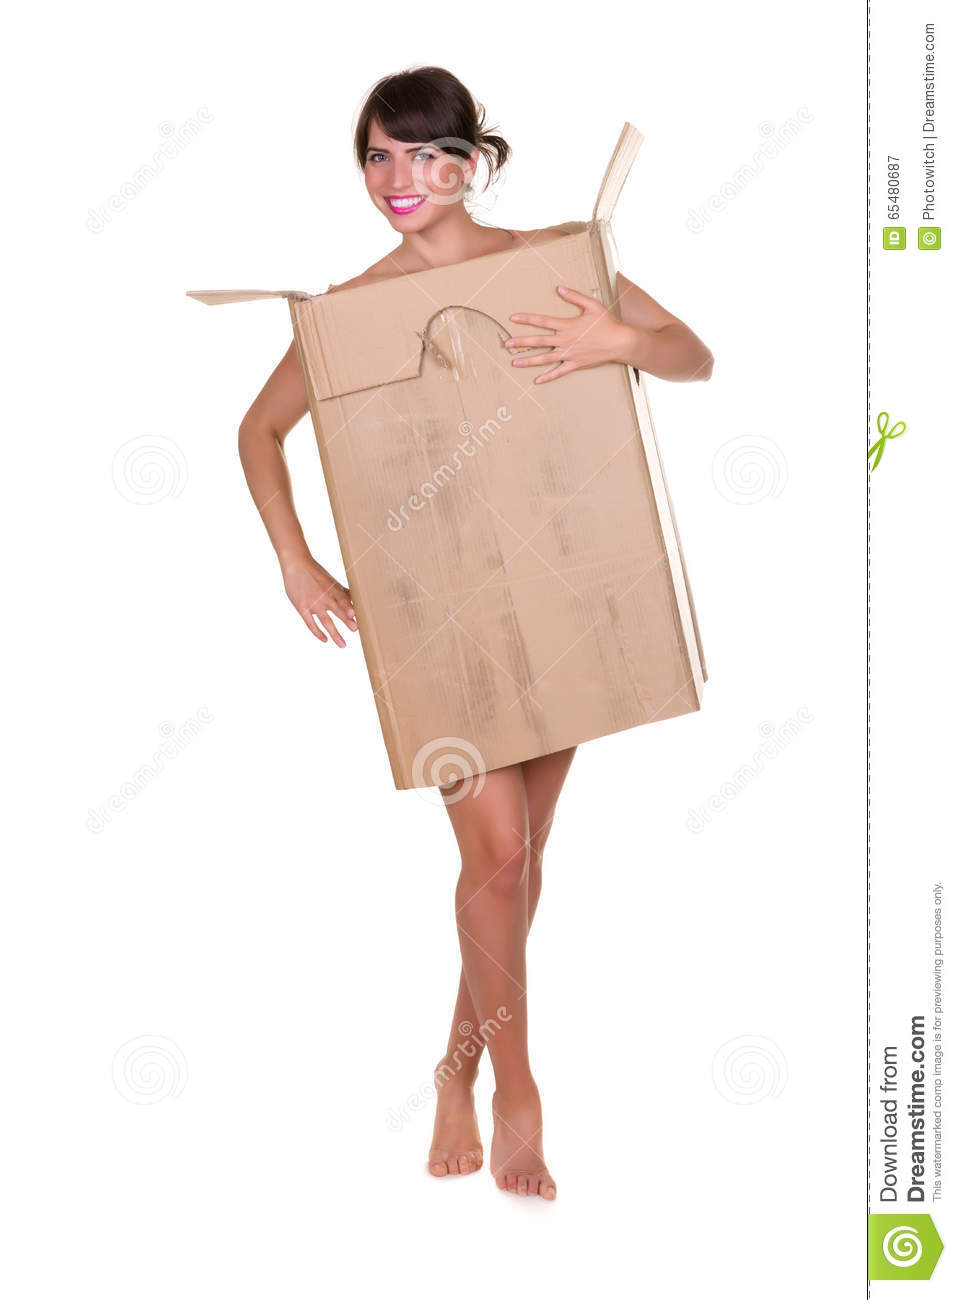 Woman In Cardboard Box Stock Image Image Of Ecology